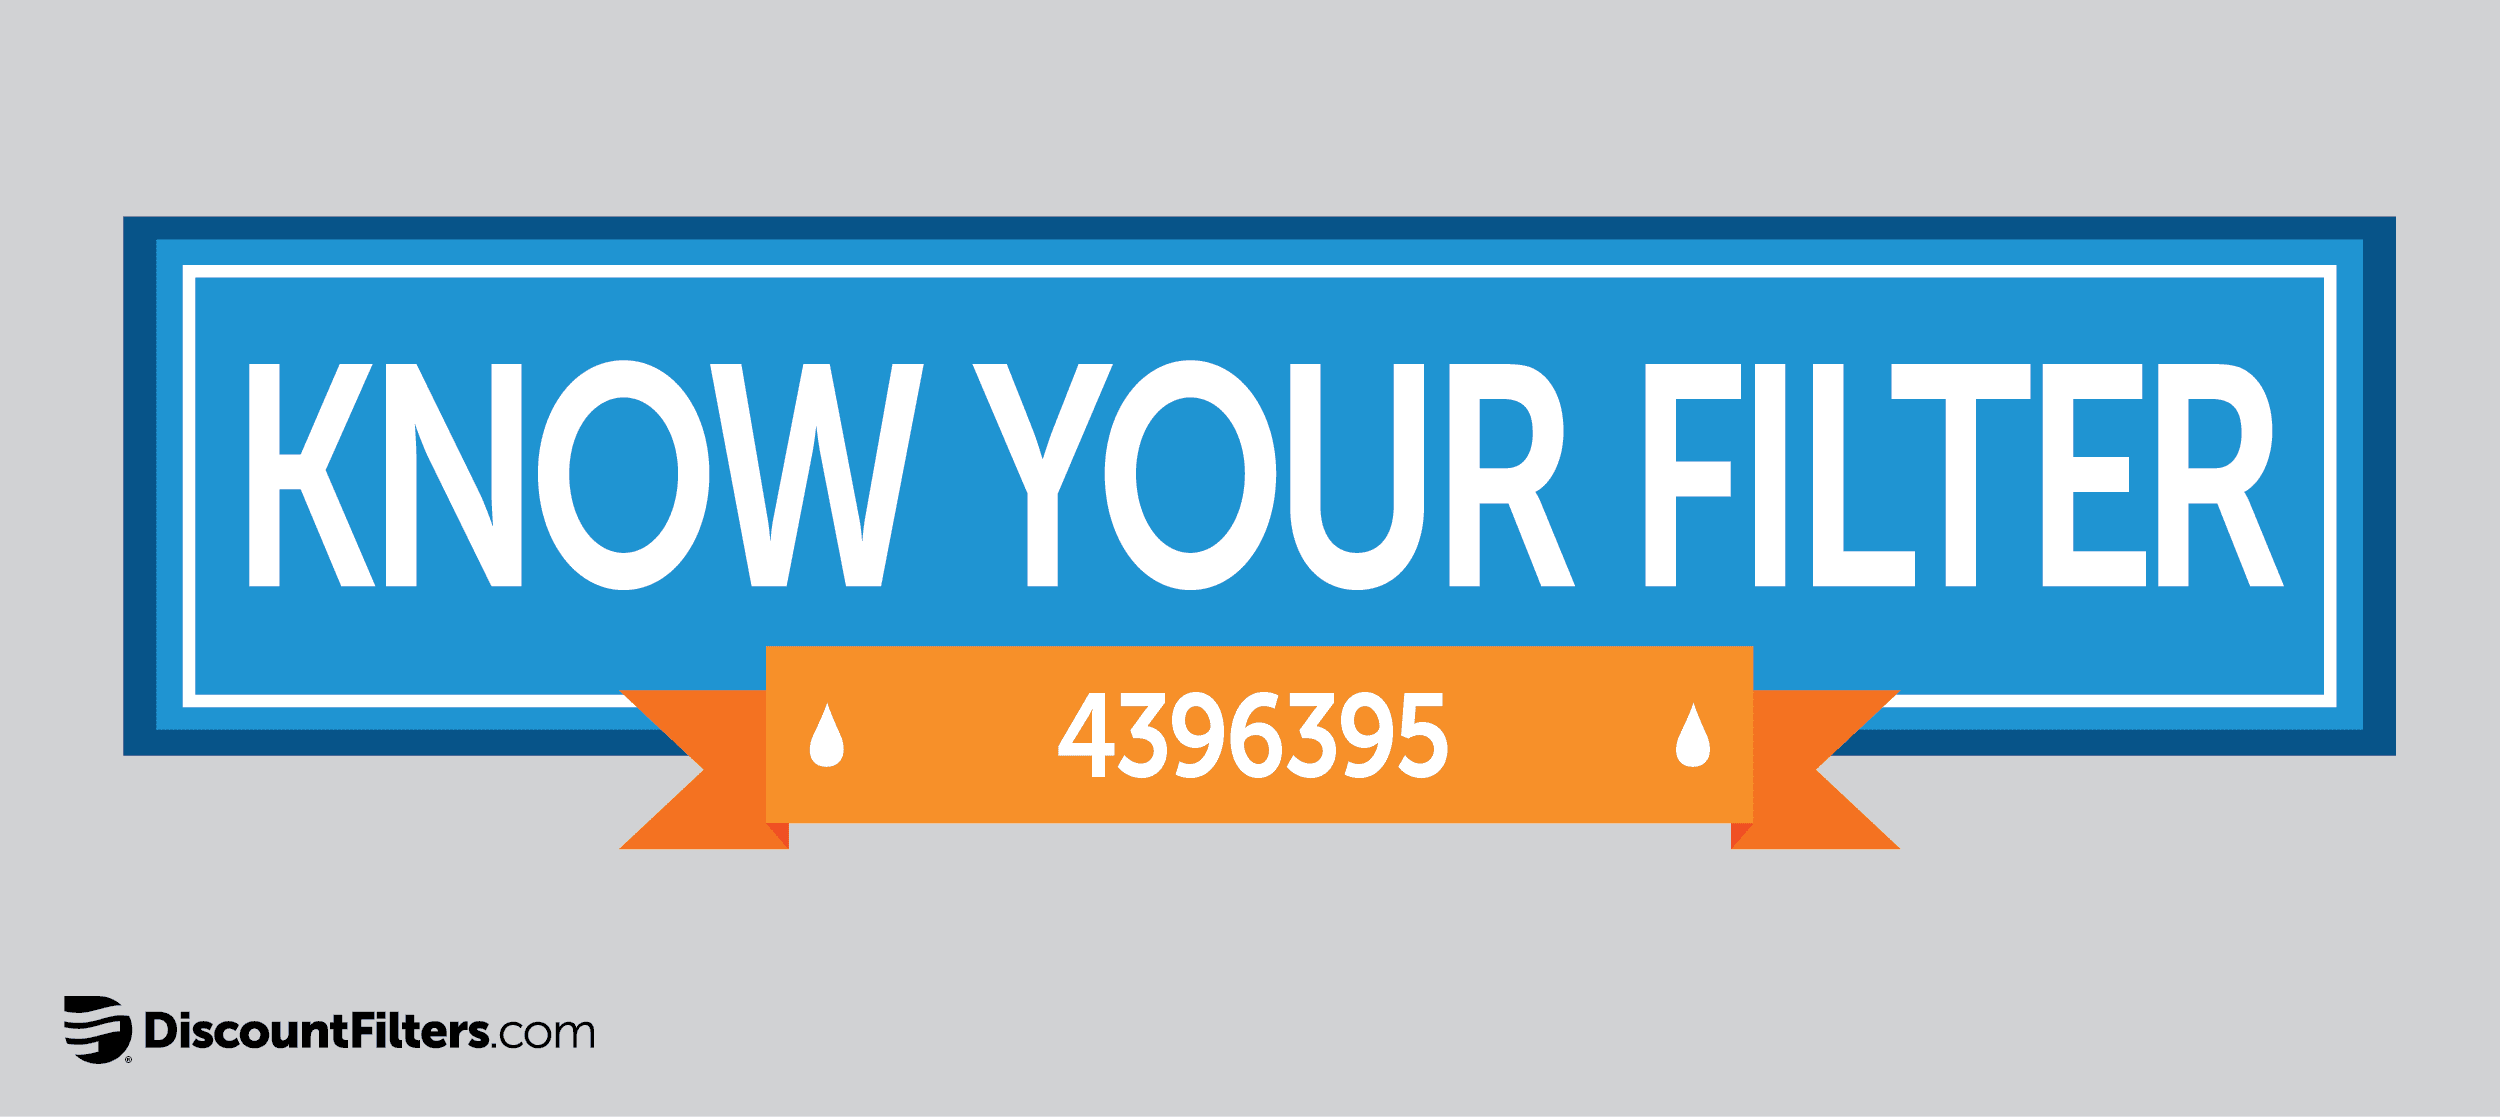 know your filter: 4396395